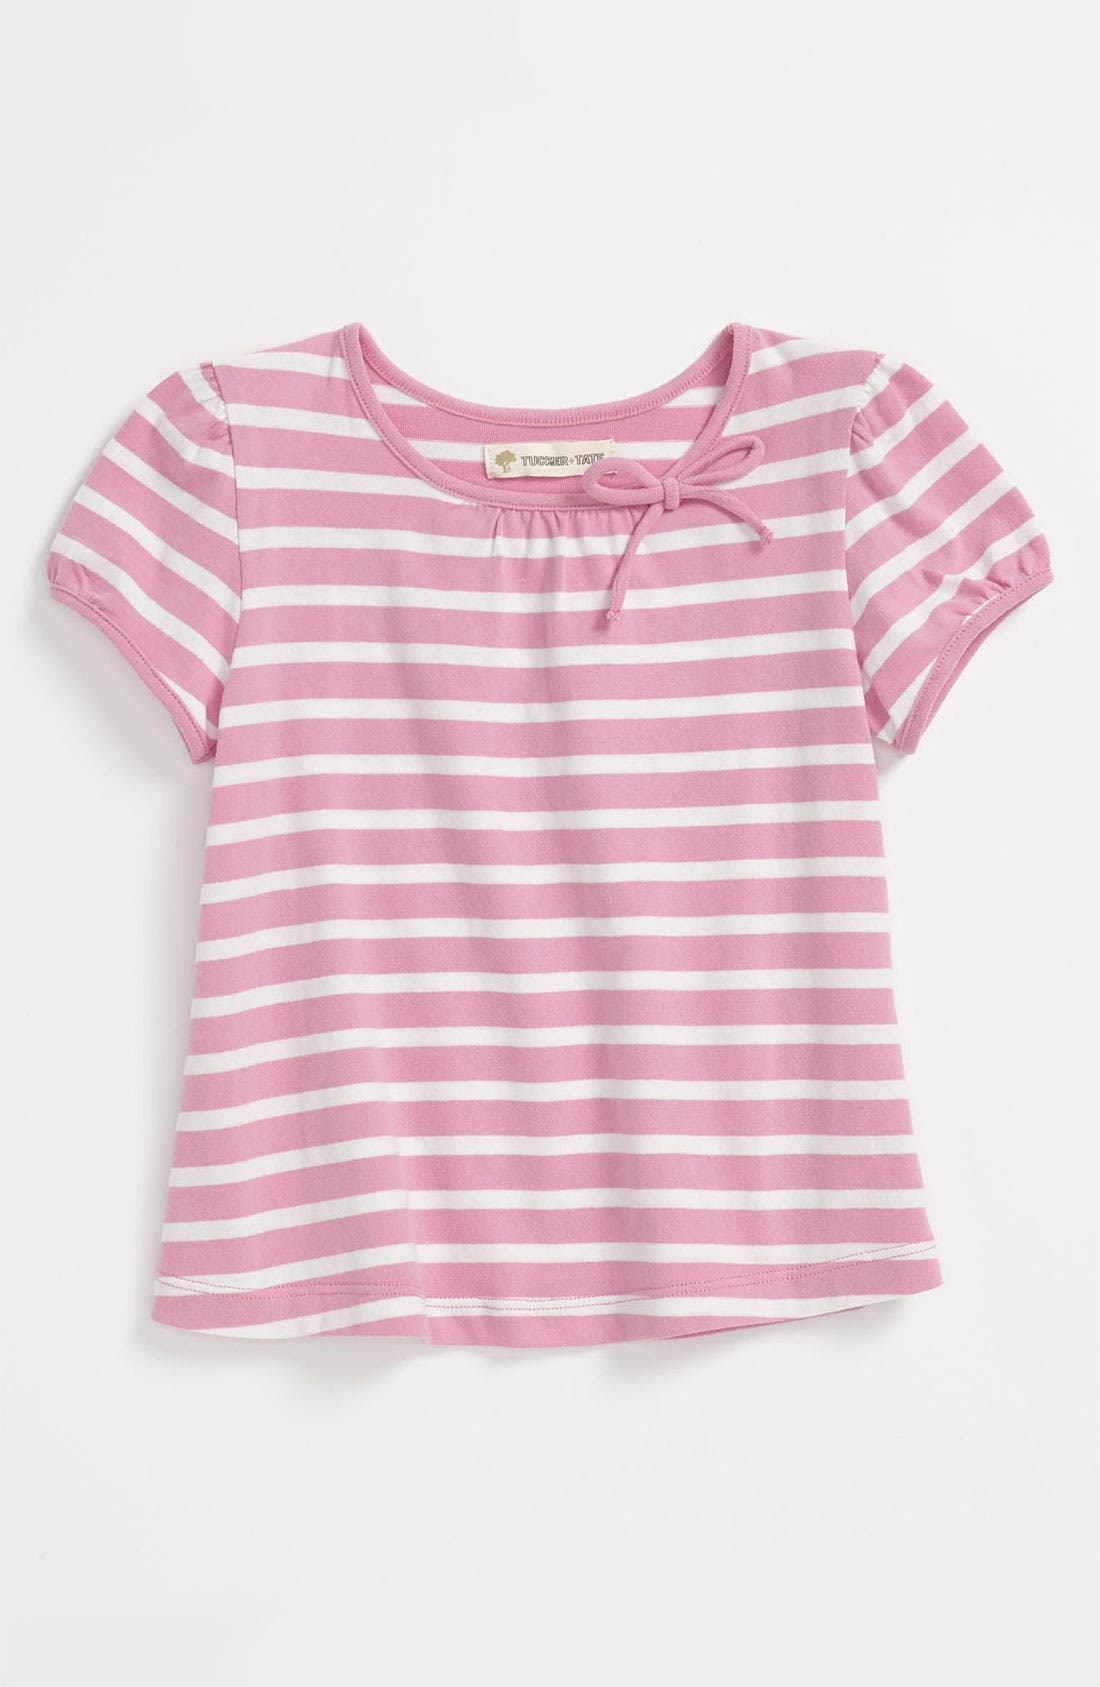 Main Image - Tucker + Tate 'Molly' Top (Toddler)